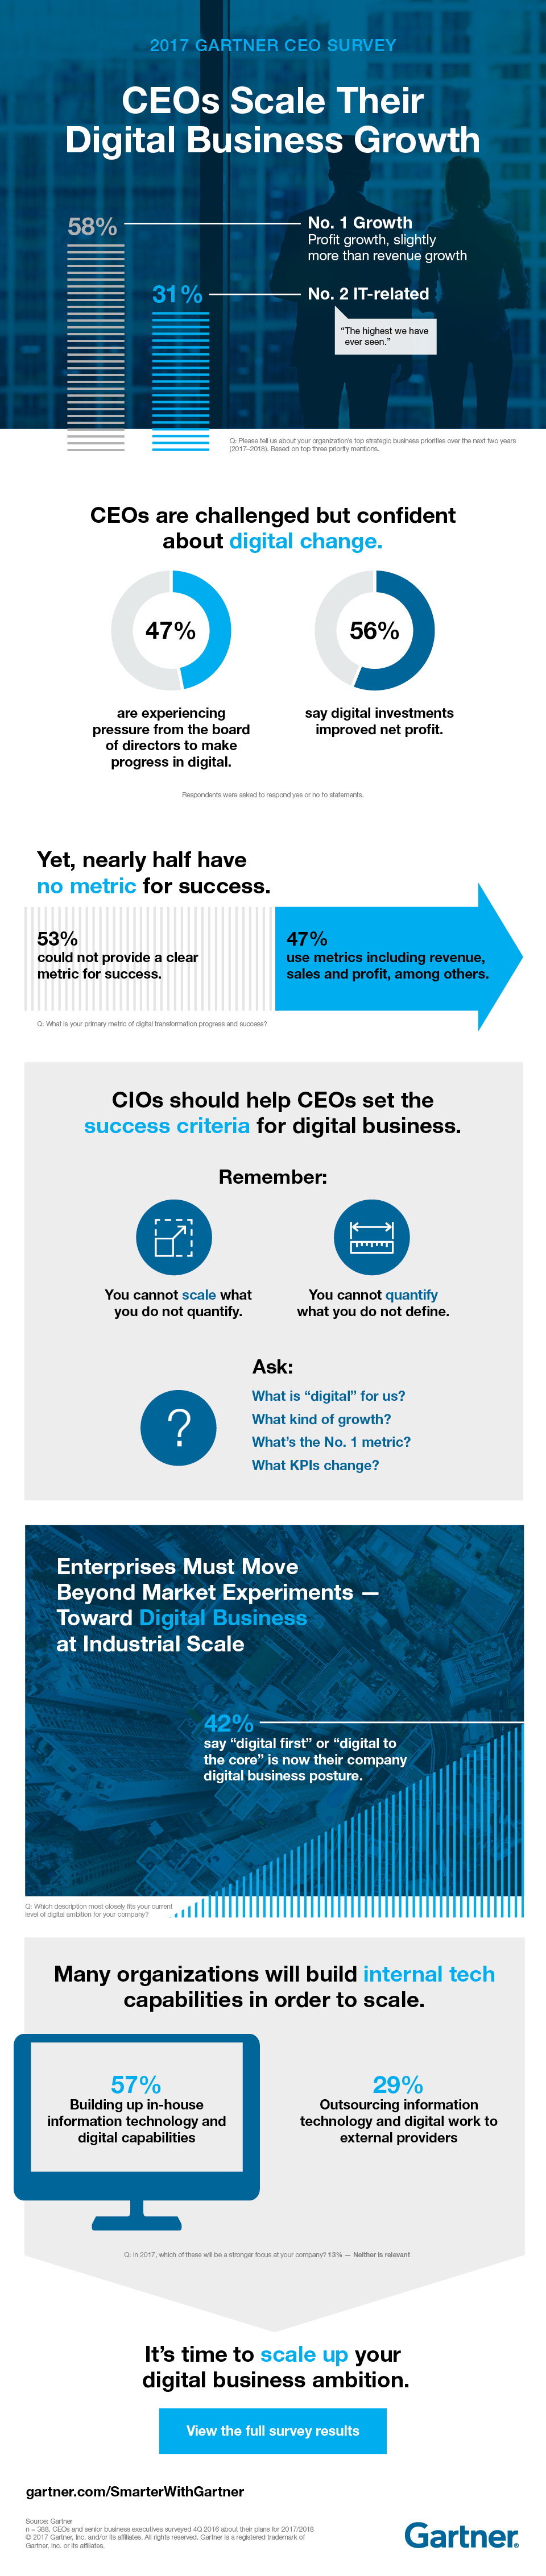 2017 CEO Survey Infographic from Gartner